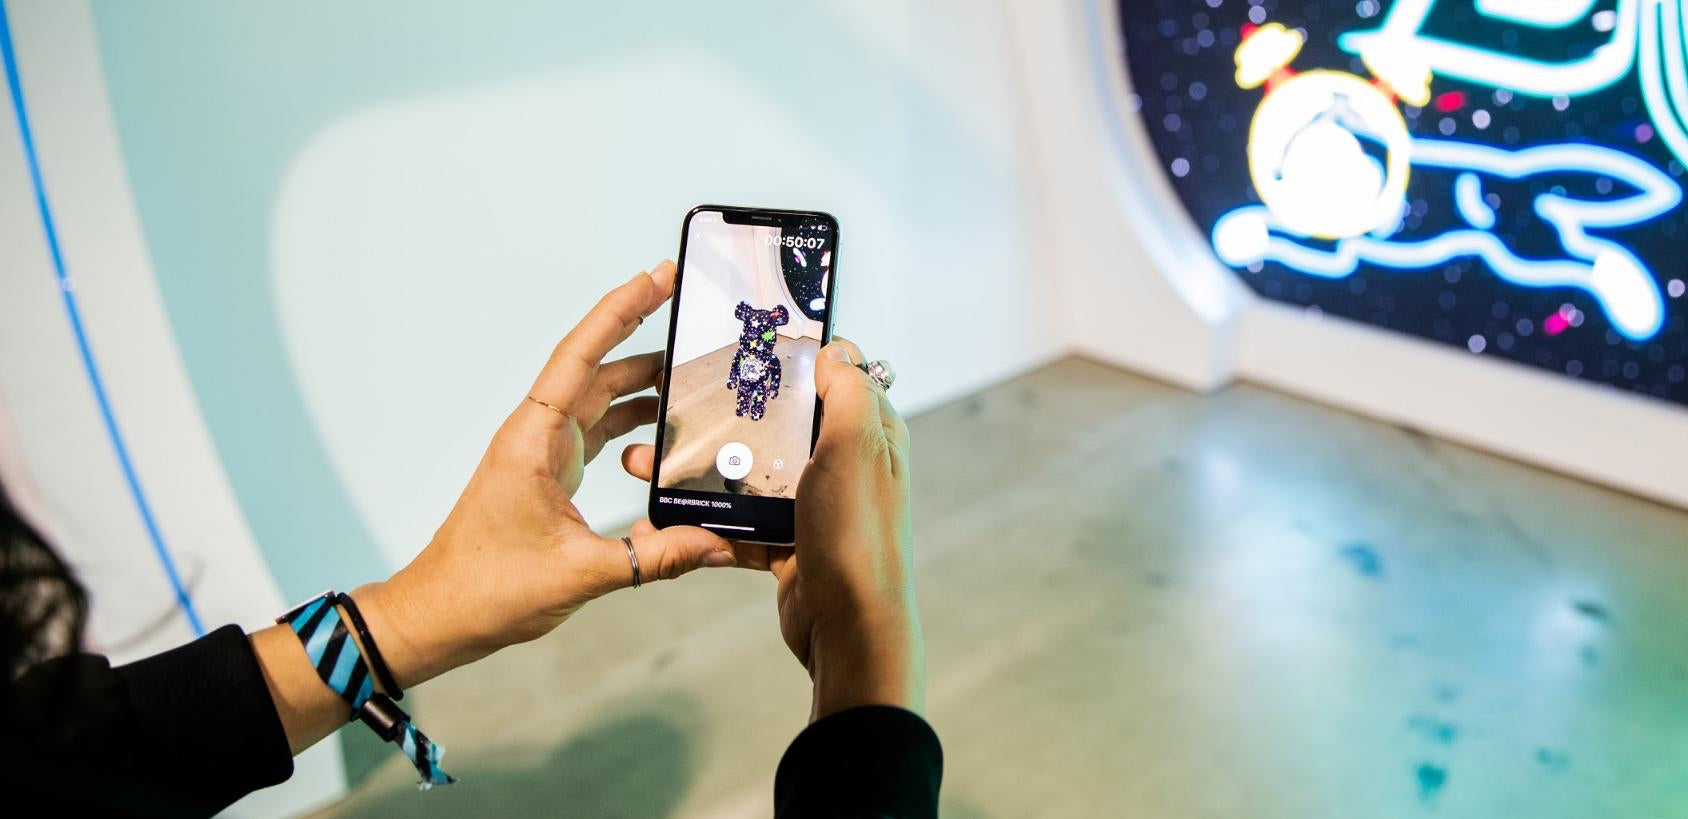 Augmented Reality Brings a New Dimension of Engagement to the Customer Experience